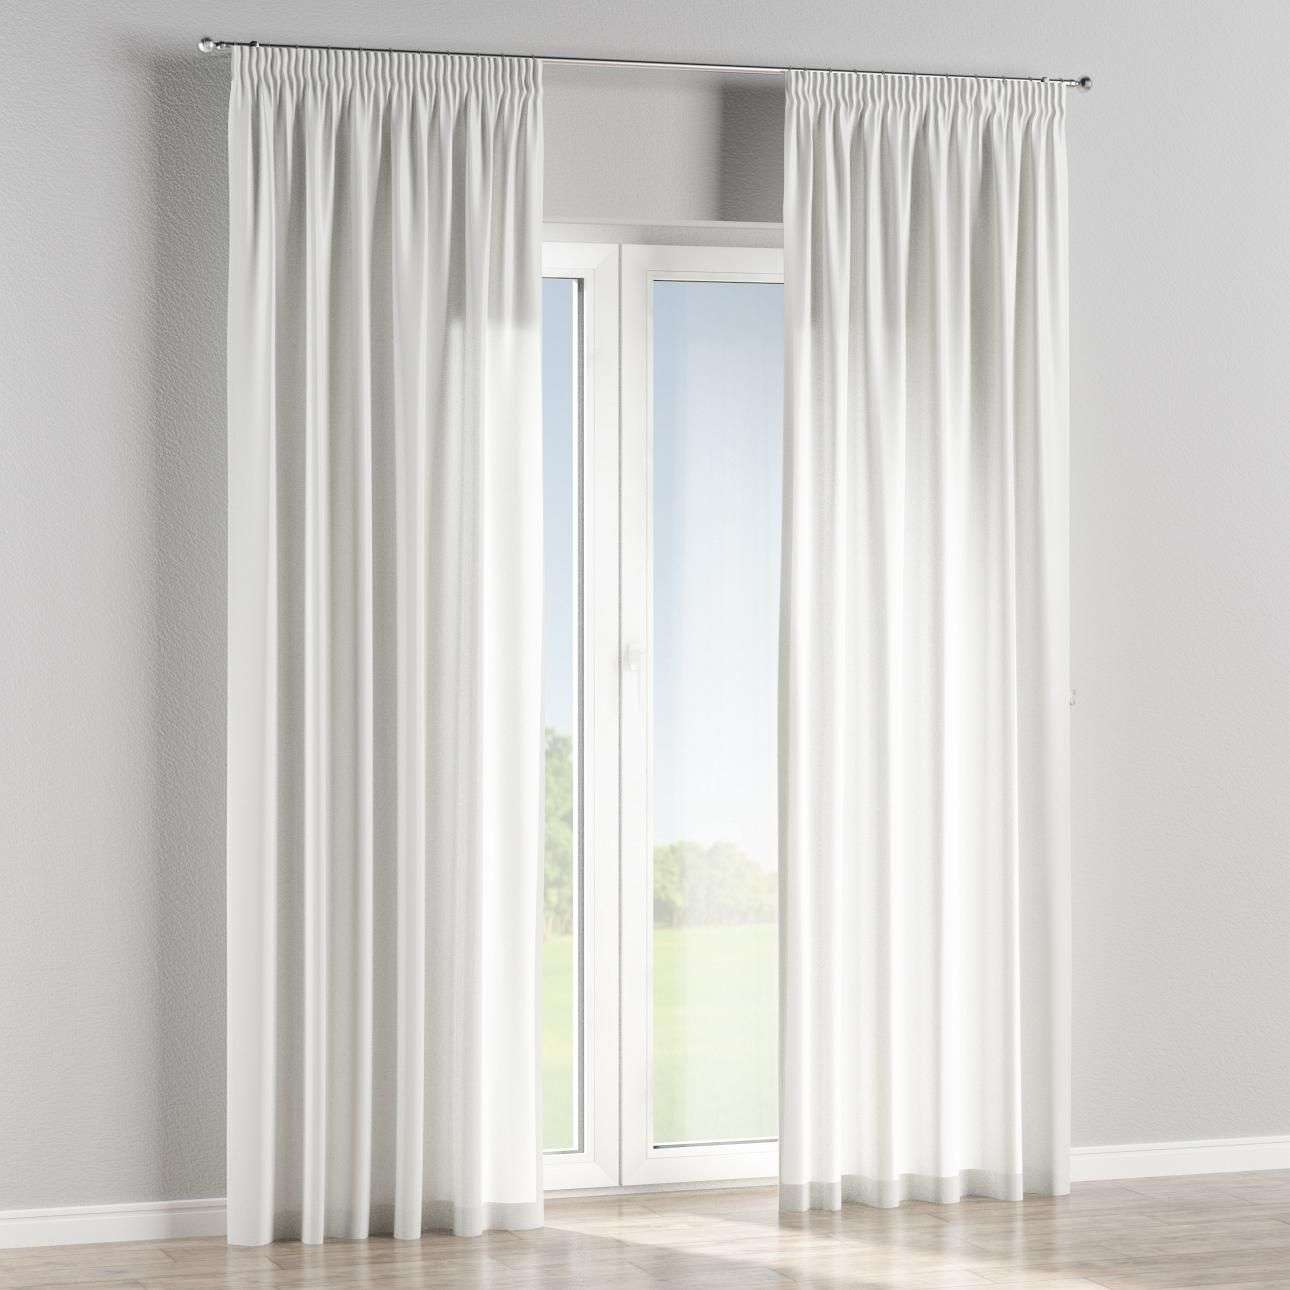 Pencil pleat curtains in collection Londres, fabric: 122-08